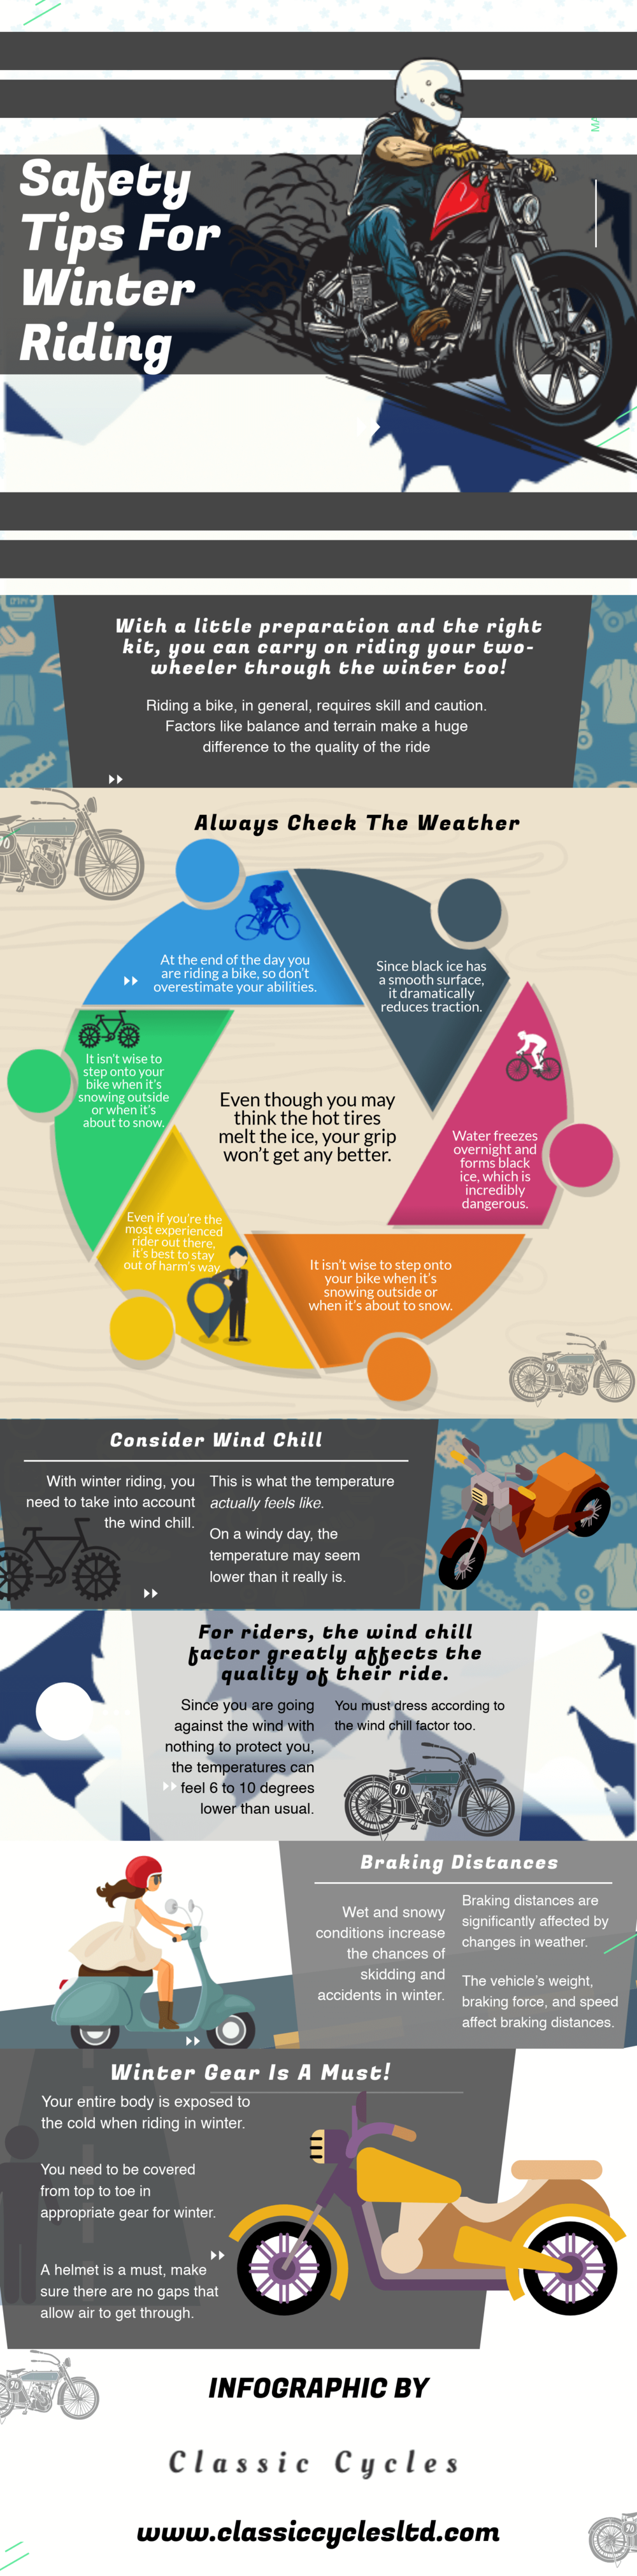 Safety Tips For Winter Riding.png